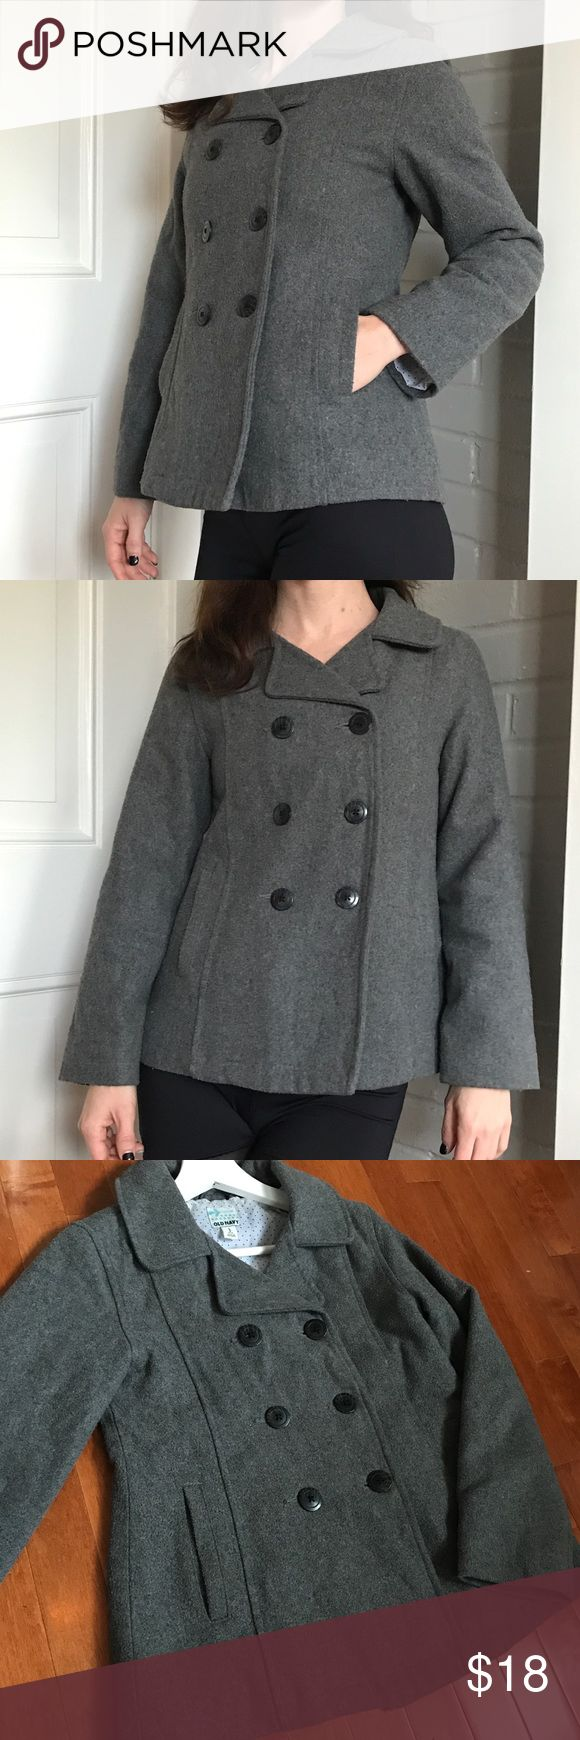 Old Navy Pea Coat This is an adorable gray pea coat by Old Navy. This item is a girls' Large, and I bought for myself as an XS. It really is so comfortable and allows for movement and warmth. Some pilling on coat, but otherwise well-kept and dry cleaned. Old Navy Jackets & Coats Pea Coats